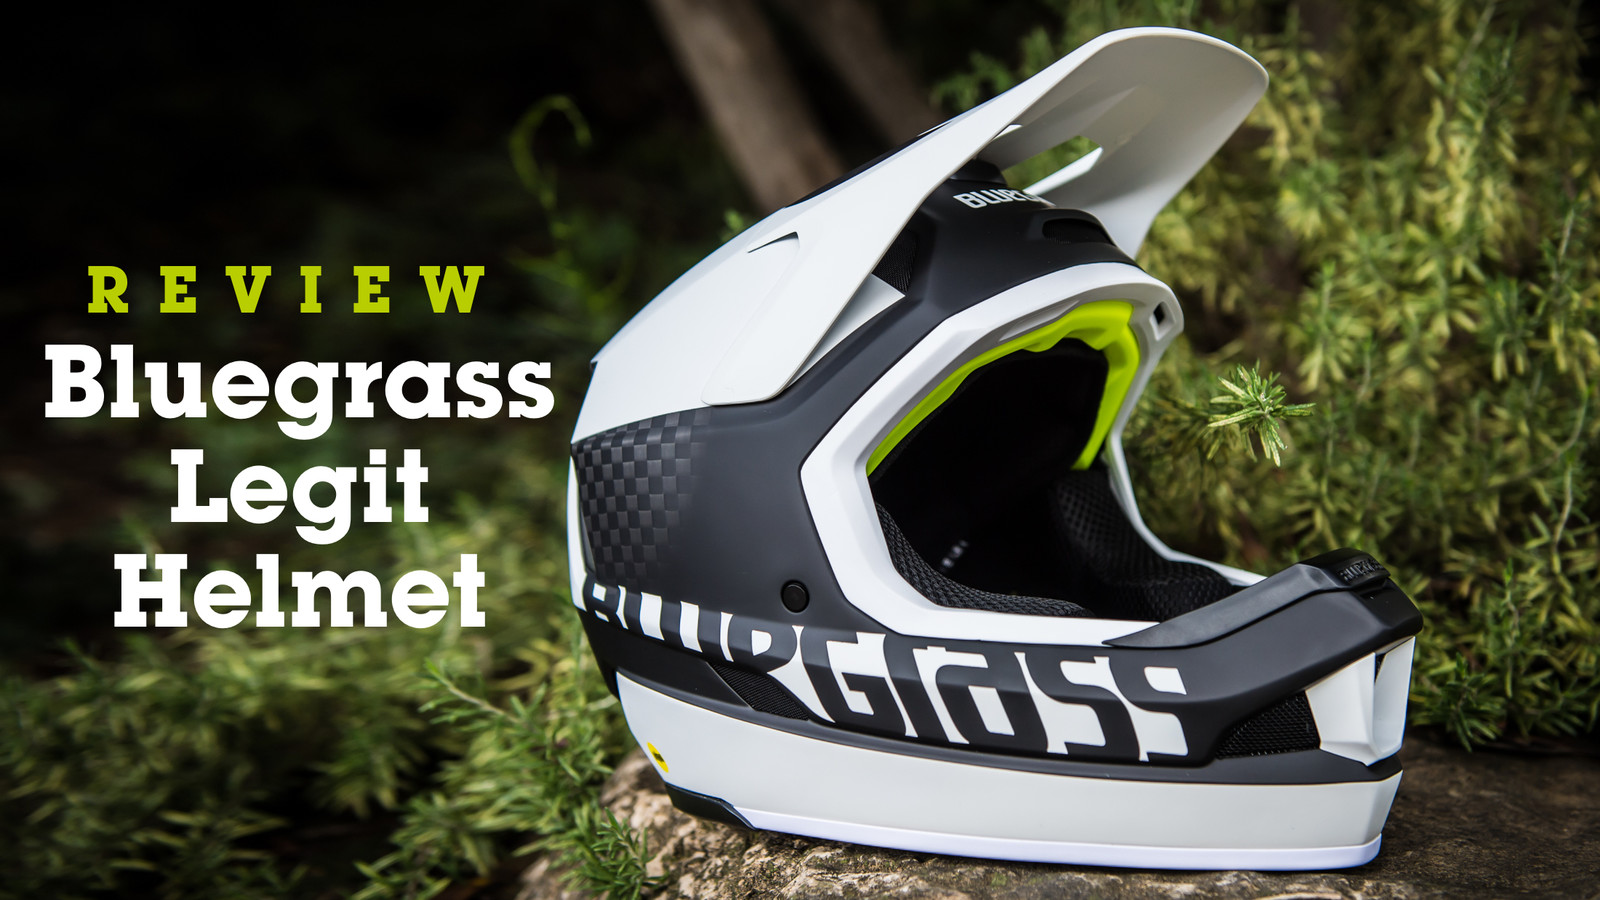 Tested: Bluegrass Legit Carbon Full Face Helmet